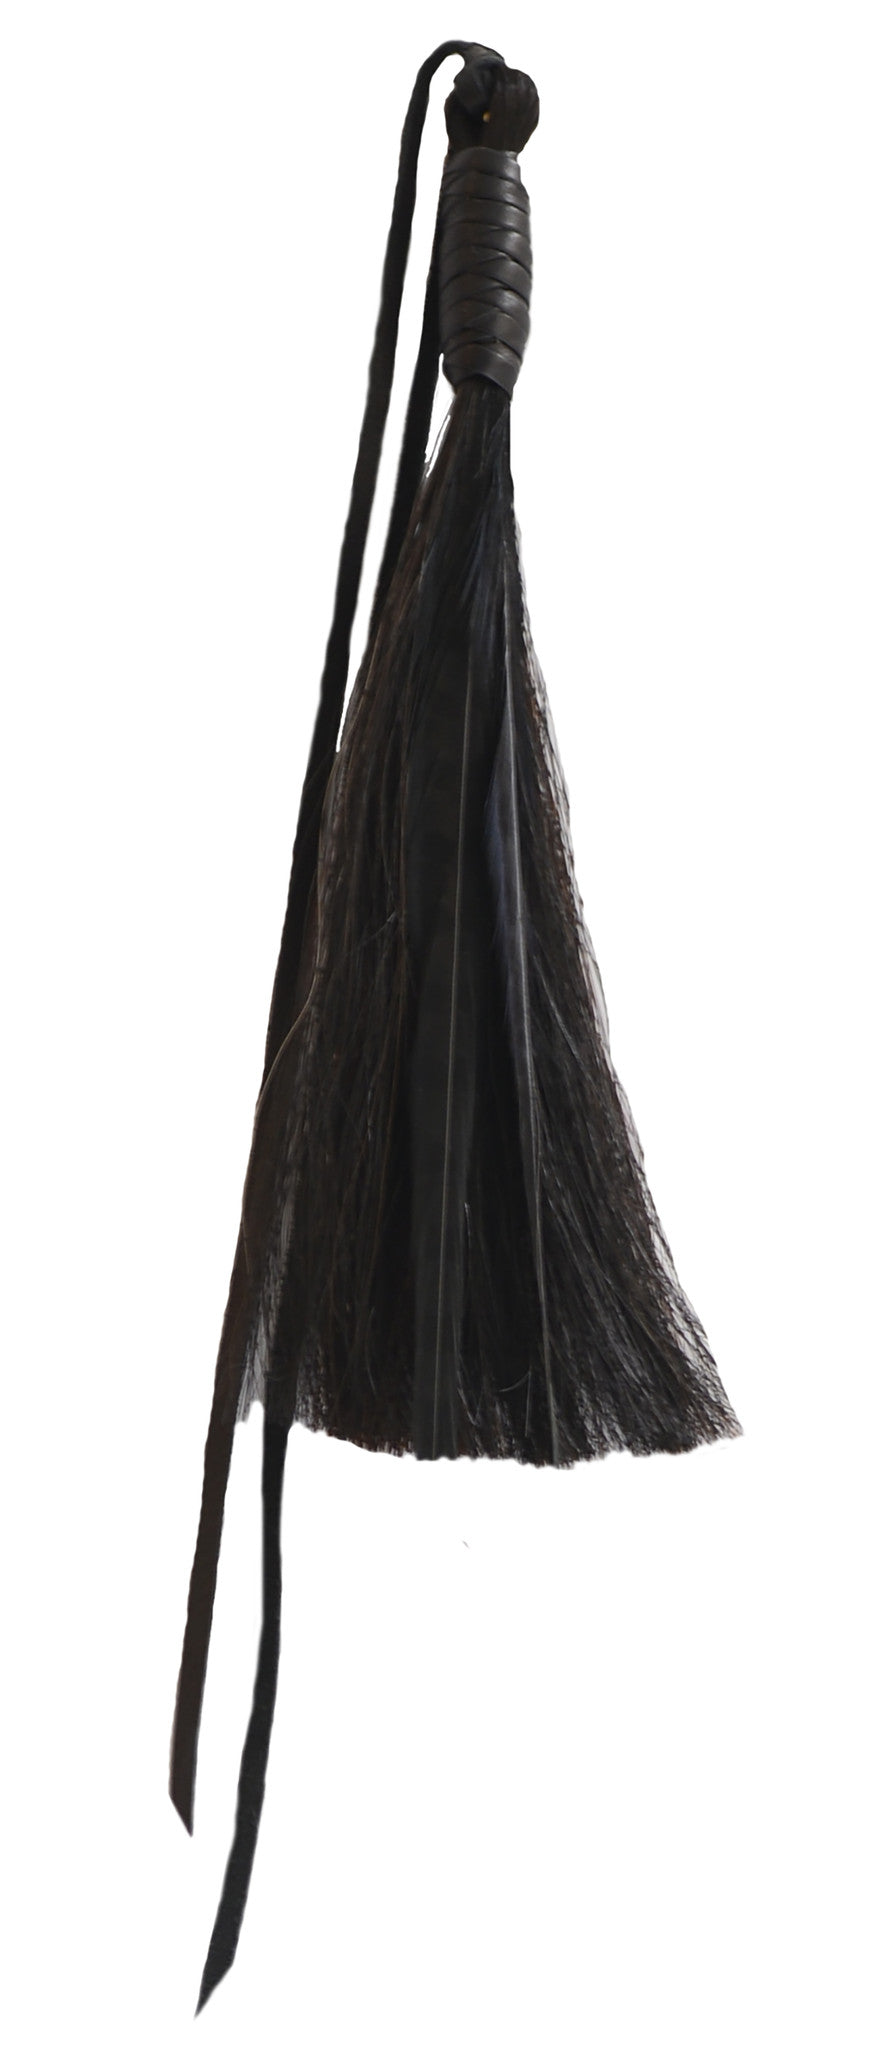 Horse Hair Tassel Tie Wendy Nichol Designer Handmade in NYC New York City Custom Hair Fringe Tassel Tie Bag Handbag Purse Accessory